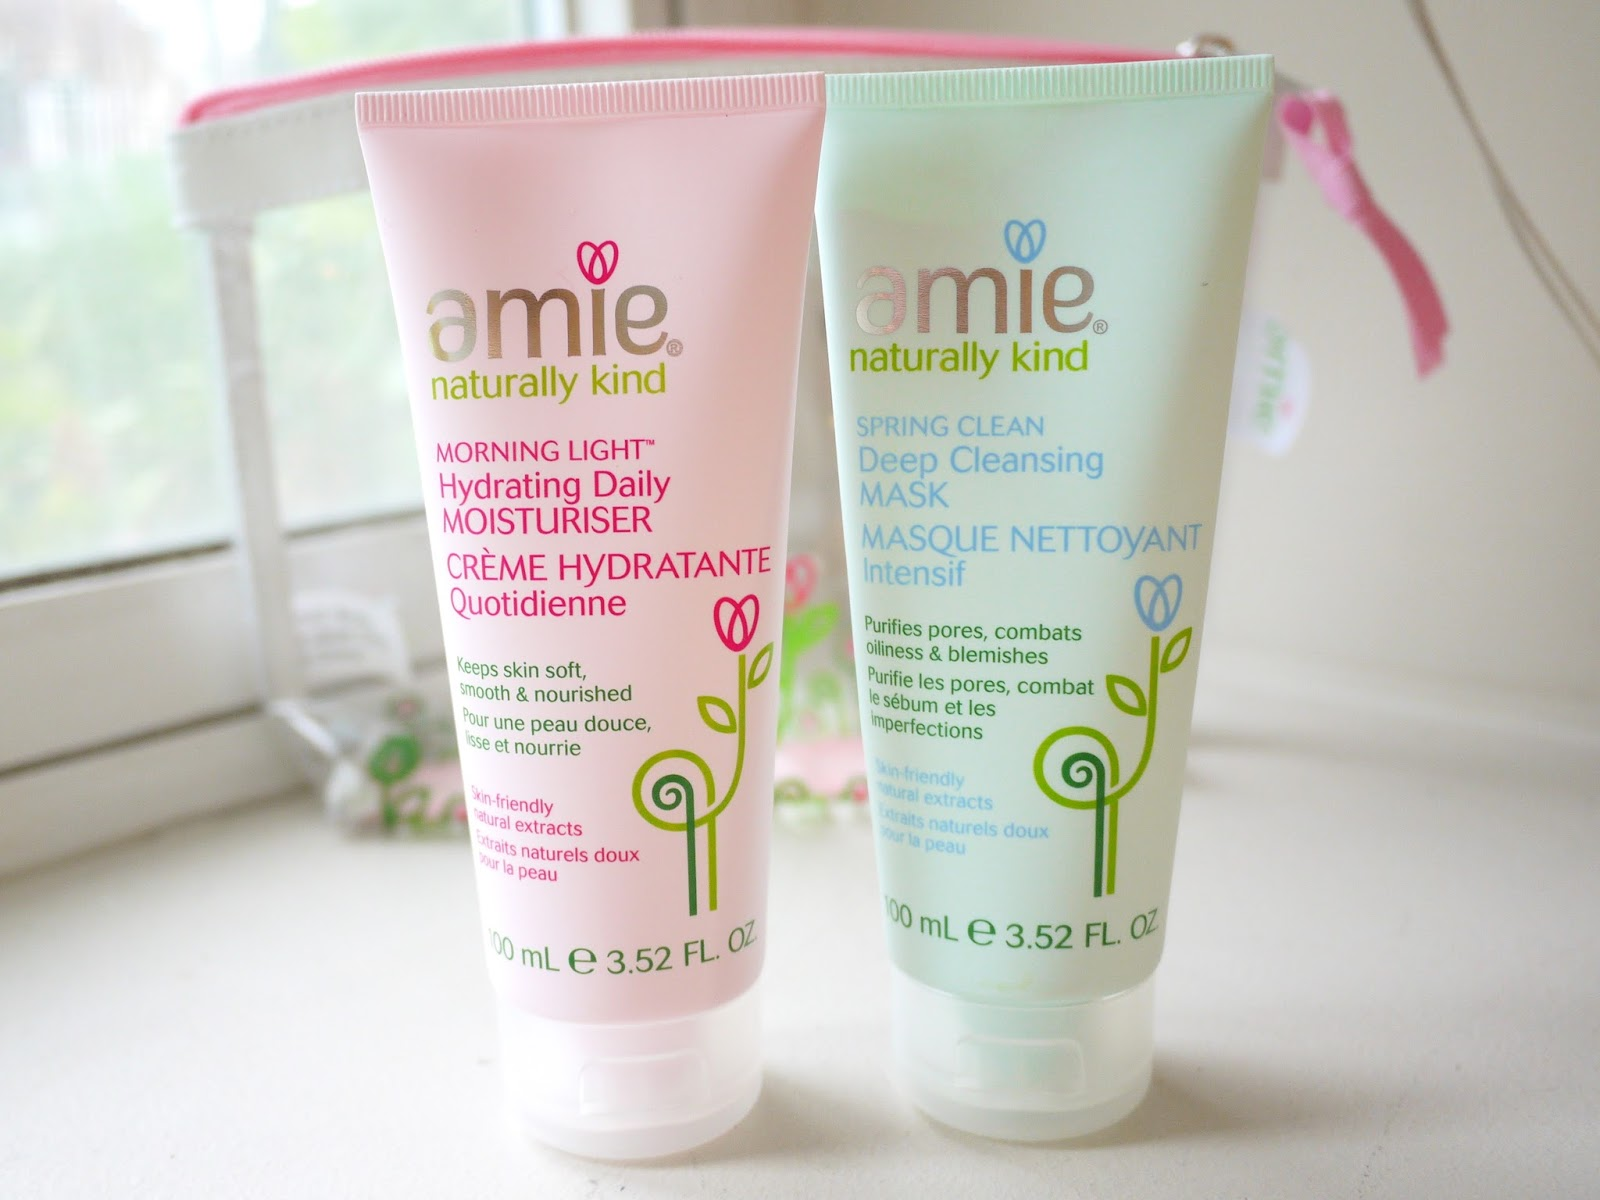 amie naturally kind skincare review morning light hydrating daily moisturizer spring clean deep cleansing mask